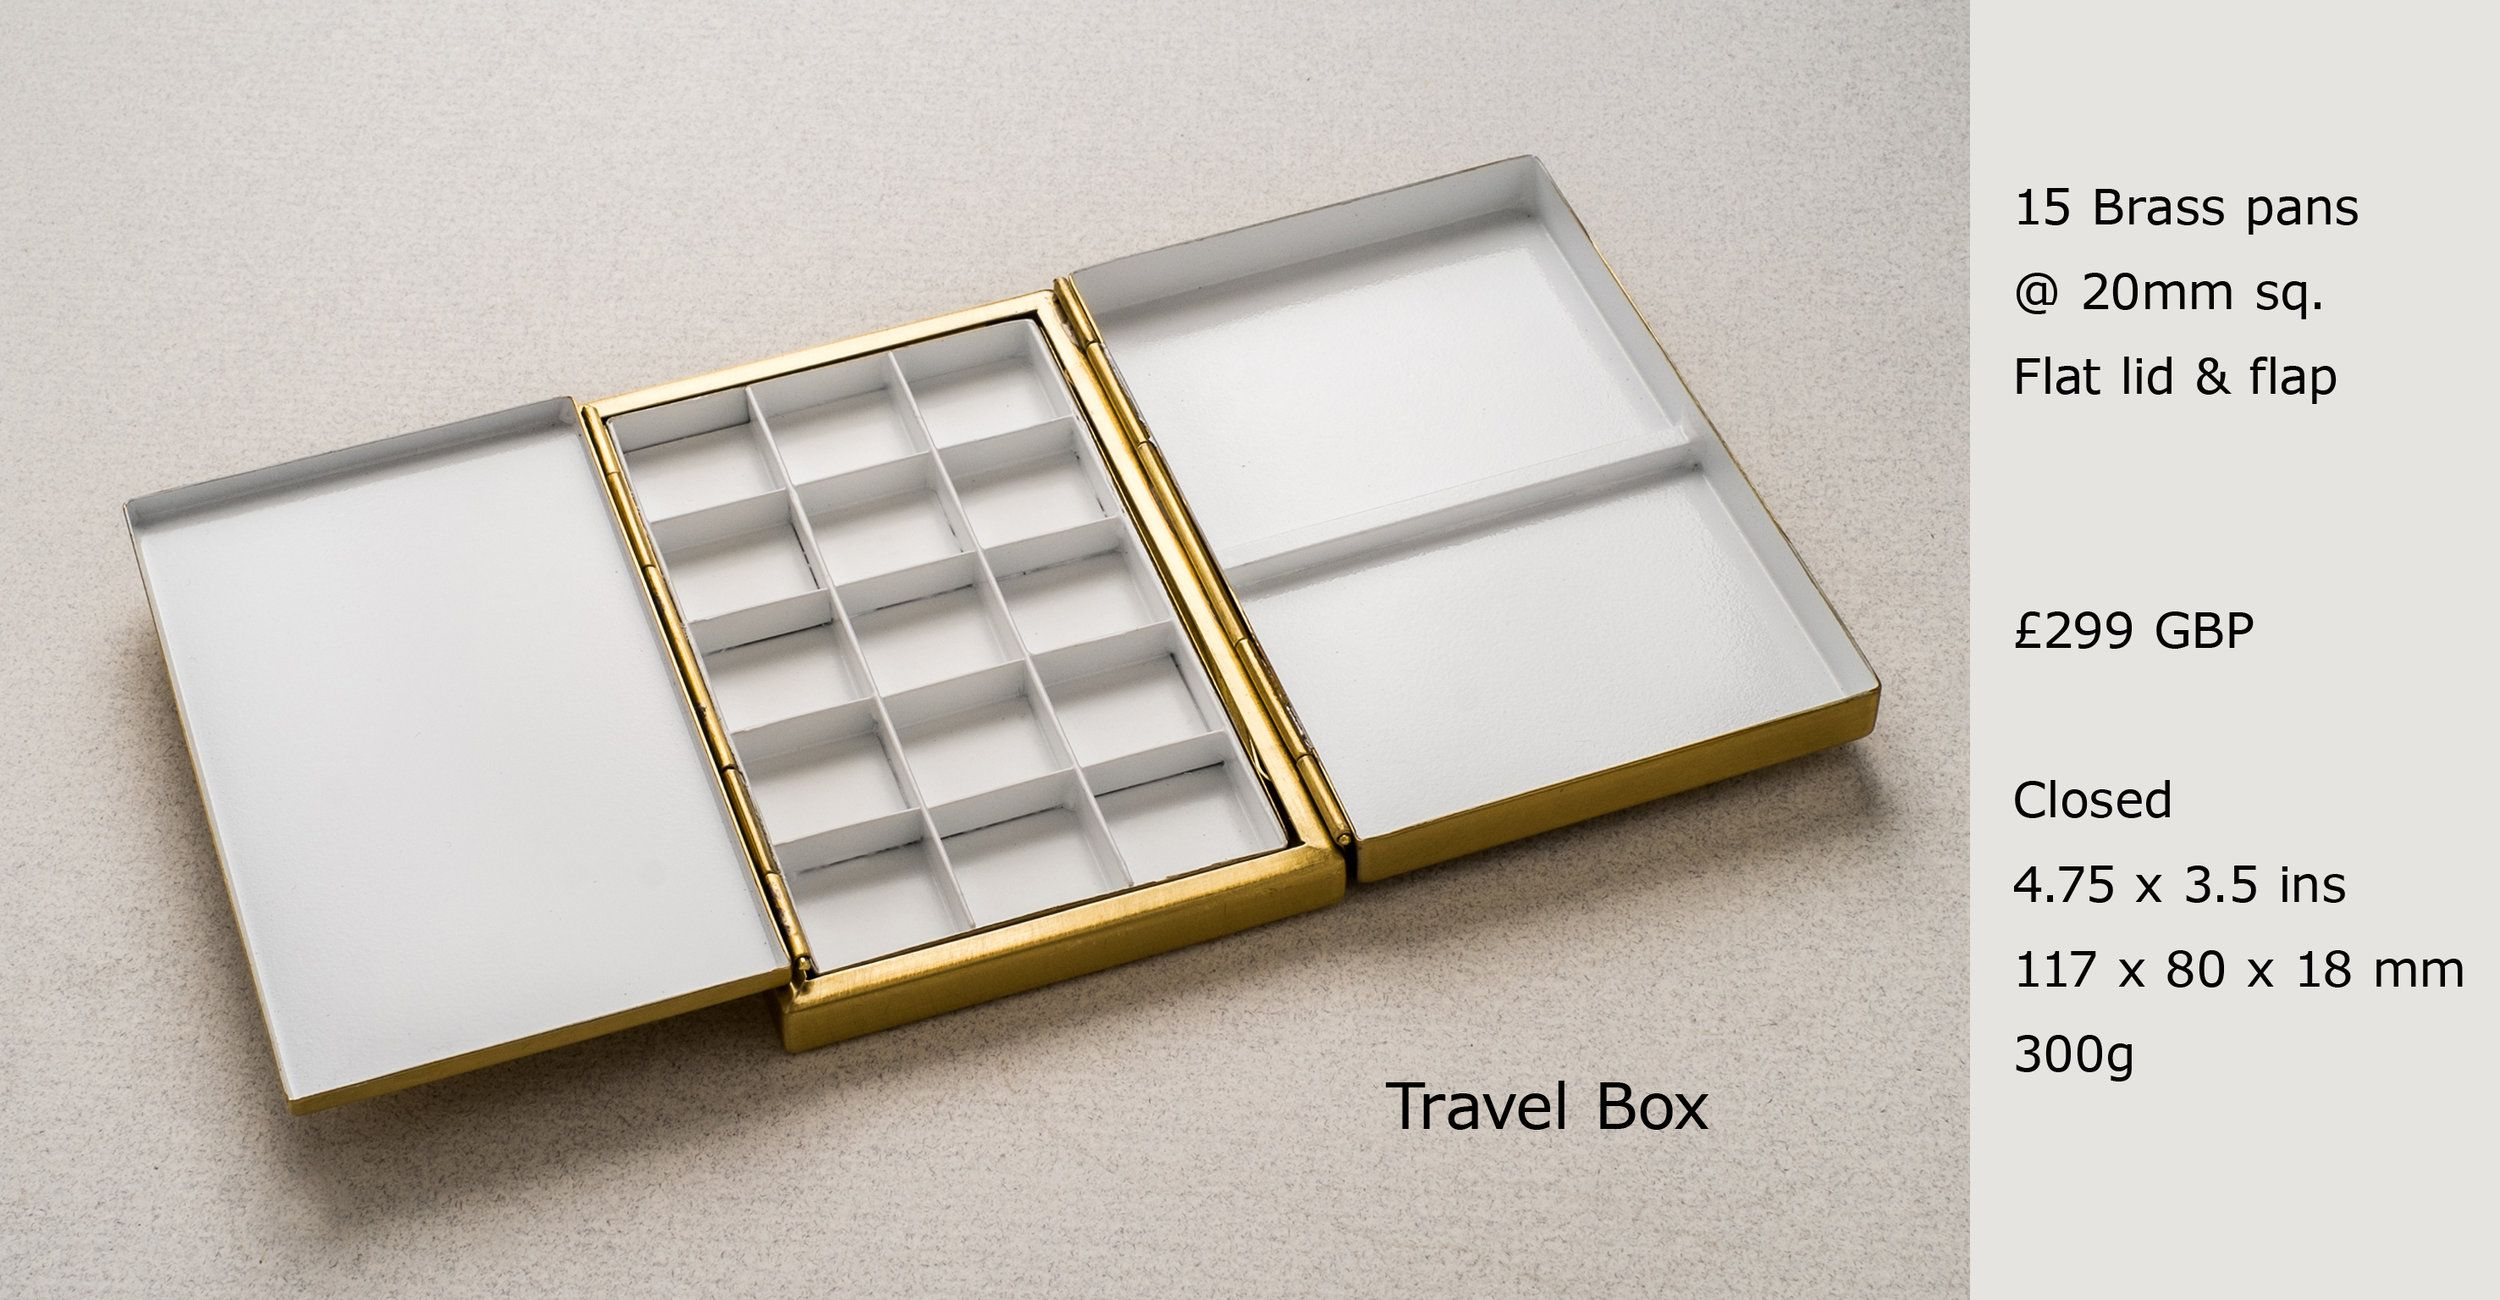 Brass Pans Brass Pans Travel Box